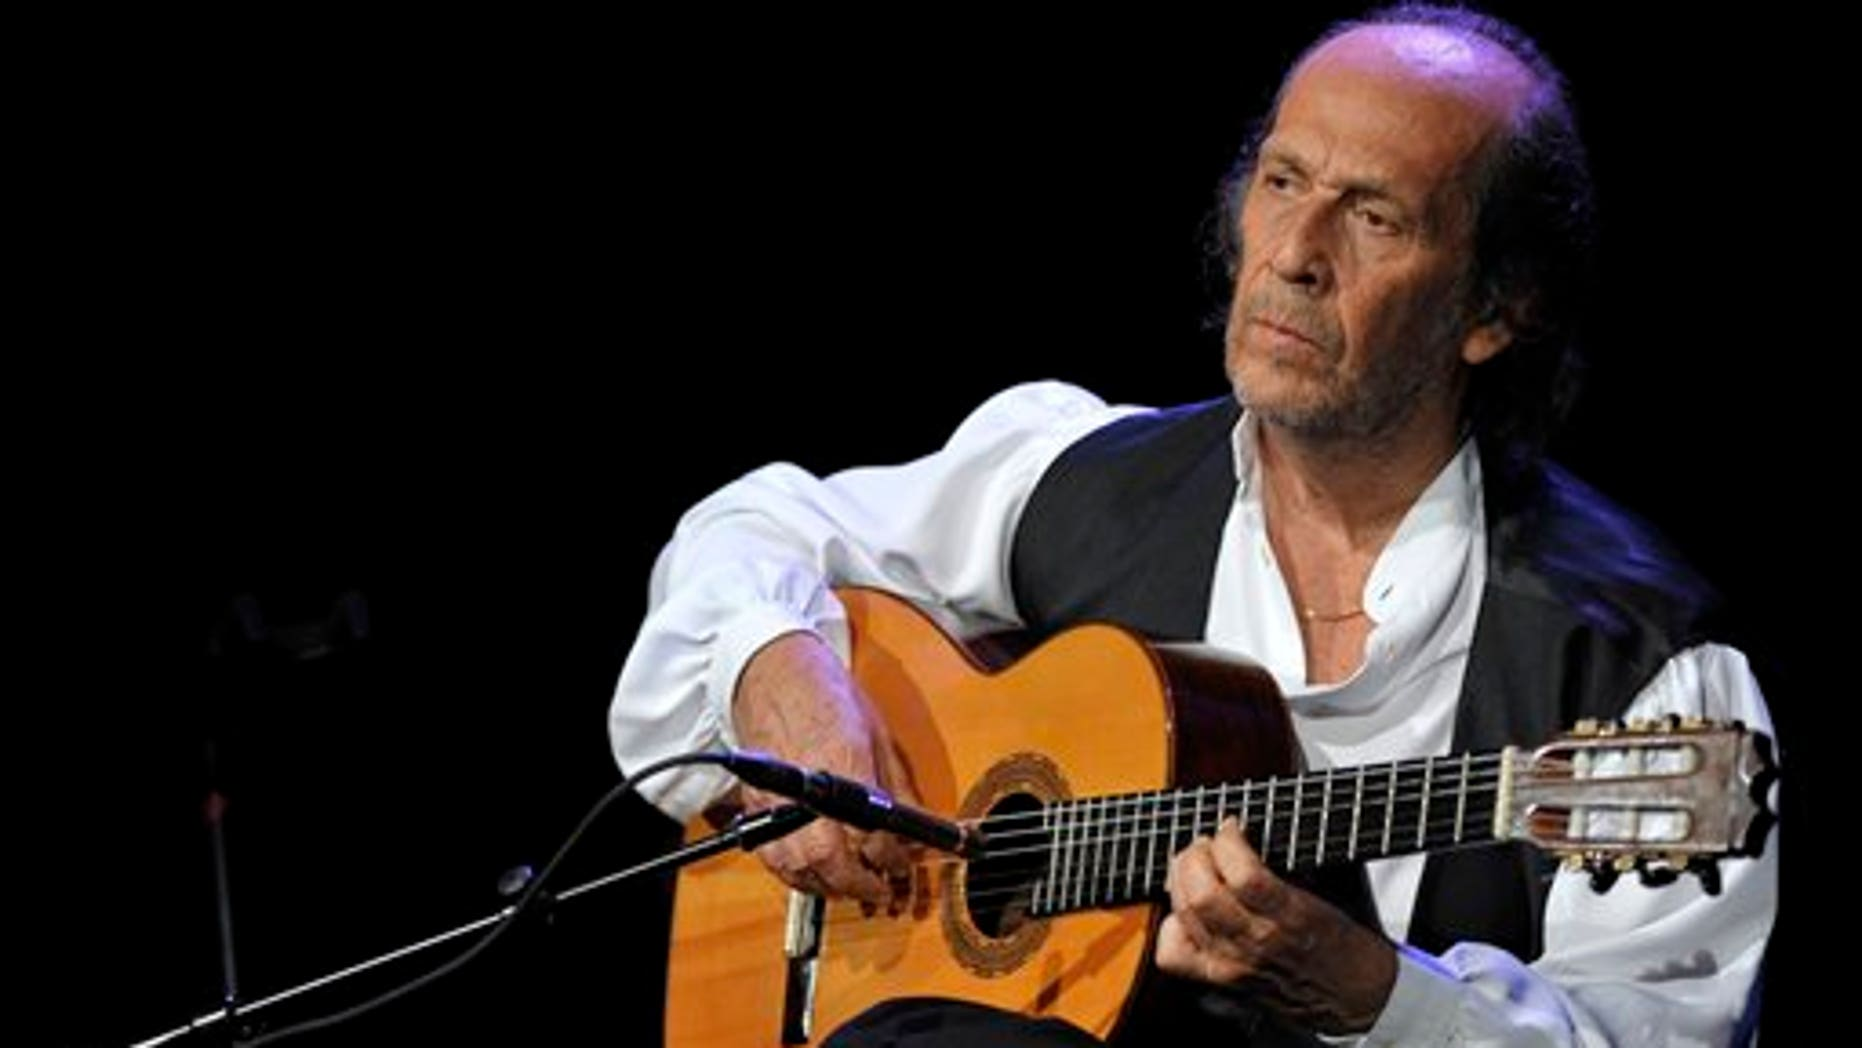 FILE - In this July 8, 2010 file photo, Spanish flamenco guitarist Paco de Lucia performs on the Miles Davis Hall stage at the 44th Montreux Jazz Festival, in Montreux, Switzerland. Spanish officials said Wednesday Feb. 26, 2014 that world-renowned flamenco guitarist Paco de Lucia has died. He was 66. Jose Ignacio Landaluce, mayor of de Lucia's native Spanish town of Algeciras said in a statement Wednesday the guitarist died in Mexico, where he lived.The cause of death was not immediately made known. De Lucia, whose real name was Francisco Sanchez Gomez, was recognized as one of the world's leading guitarists, dazzling audiences with his lightning-speed flamenco rhythms and finger work. (AP Photo/Keystone, Martial Trezzini, File)